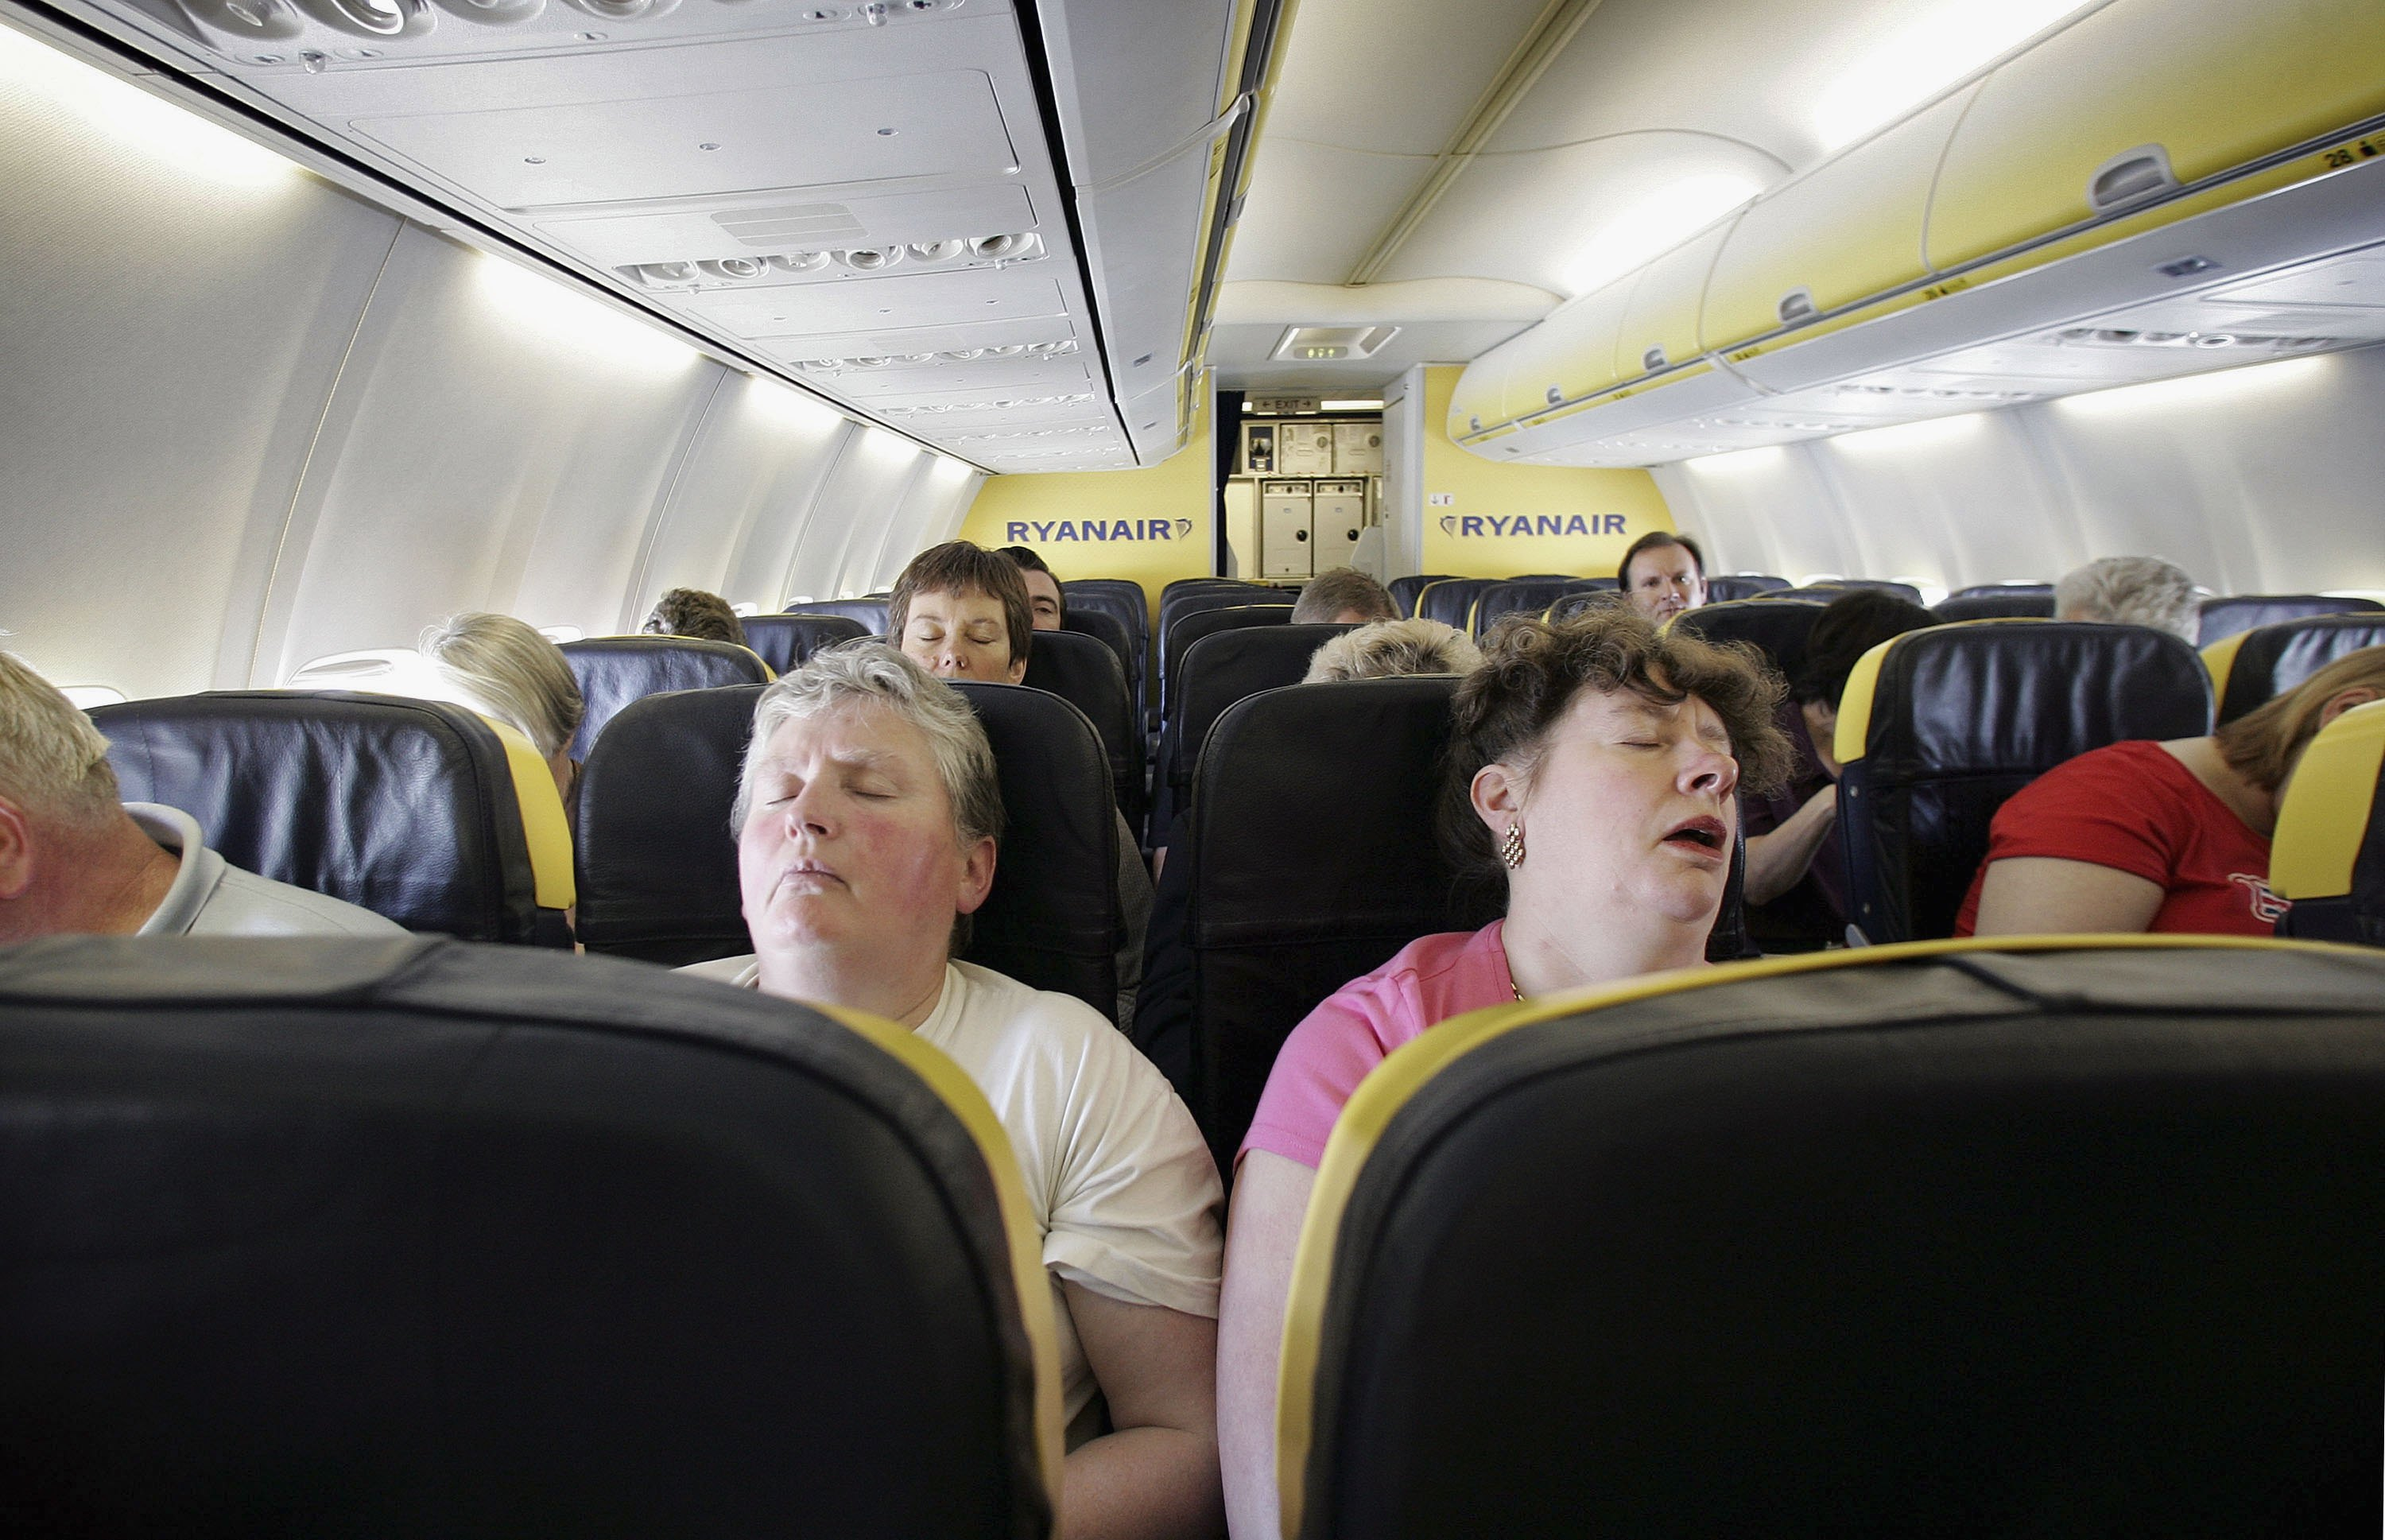 Does device infringe on passengers' right to recline?